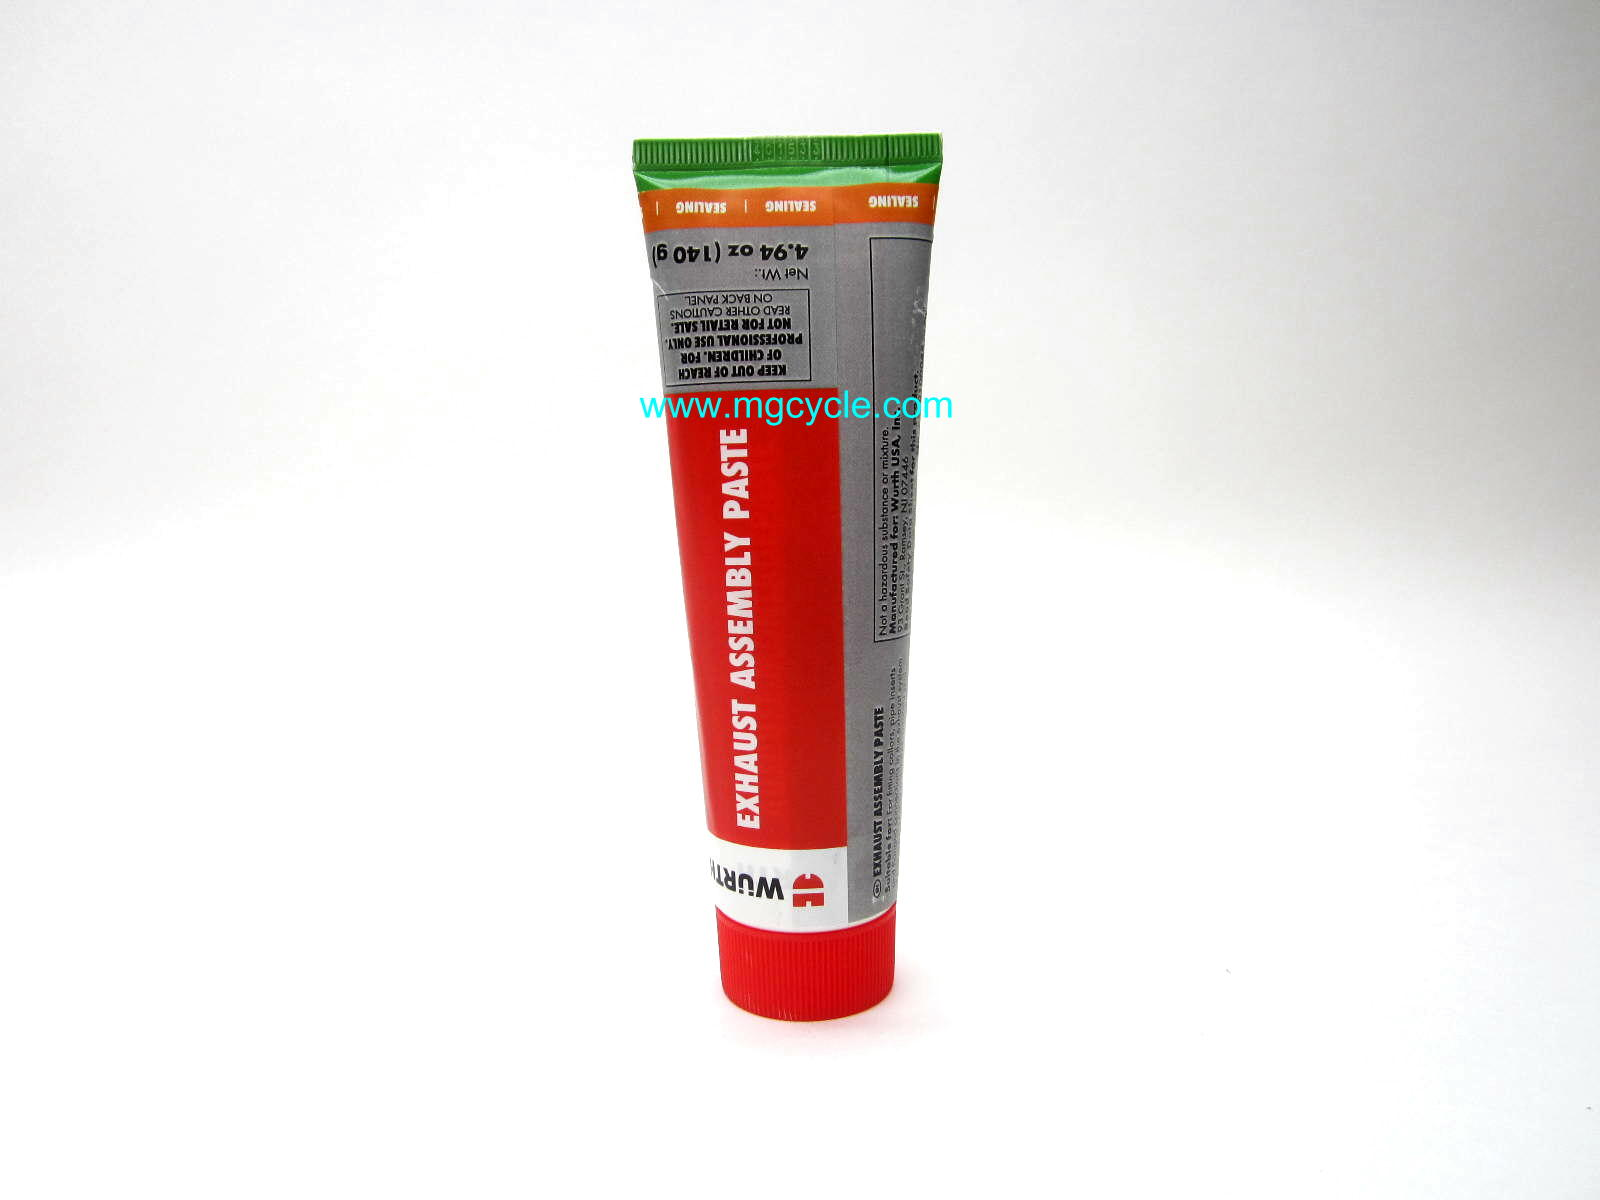 Wurth exhaust assembly paste, 4.94 fl oz tube